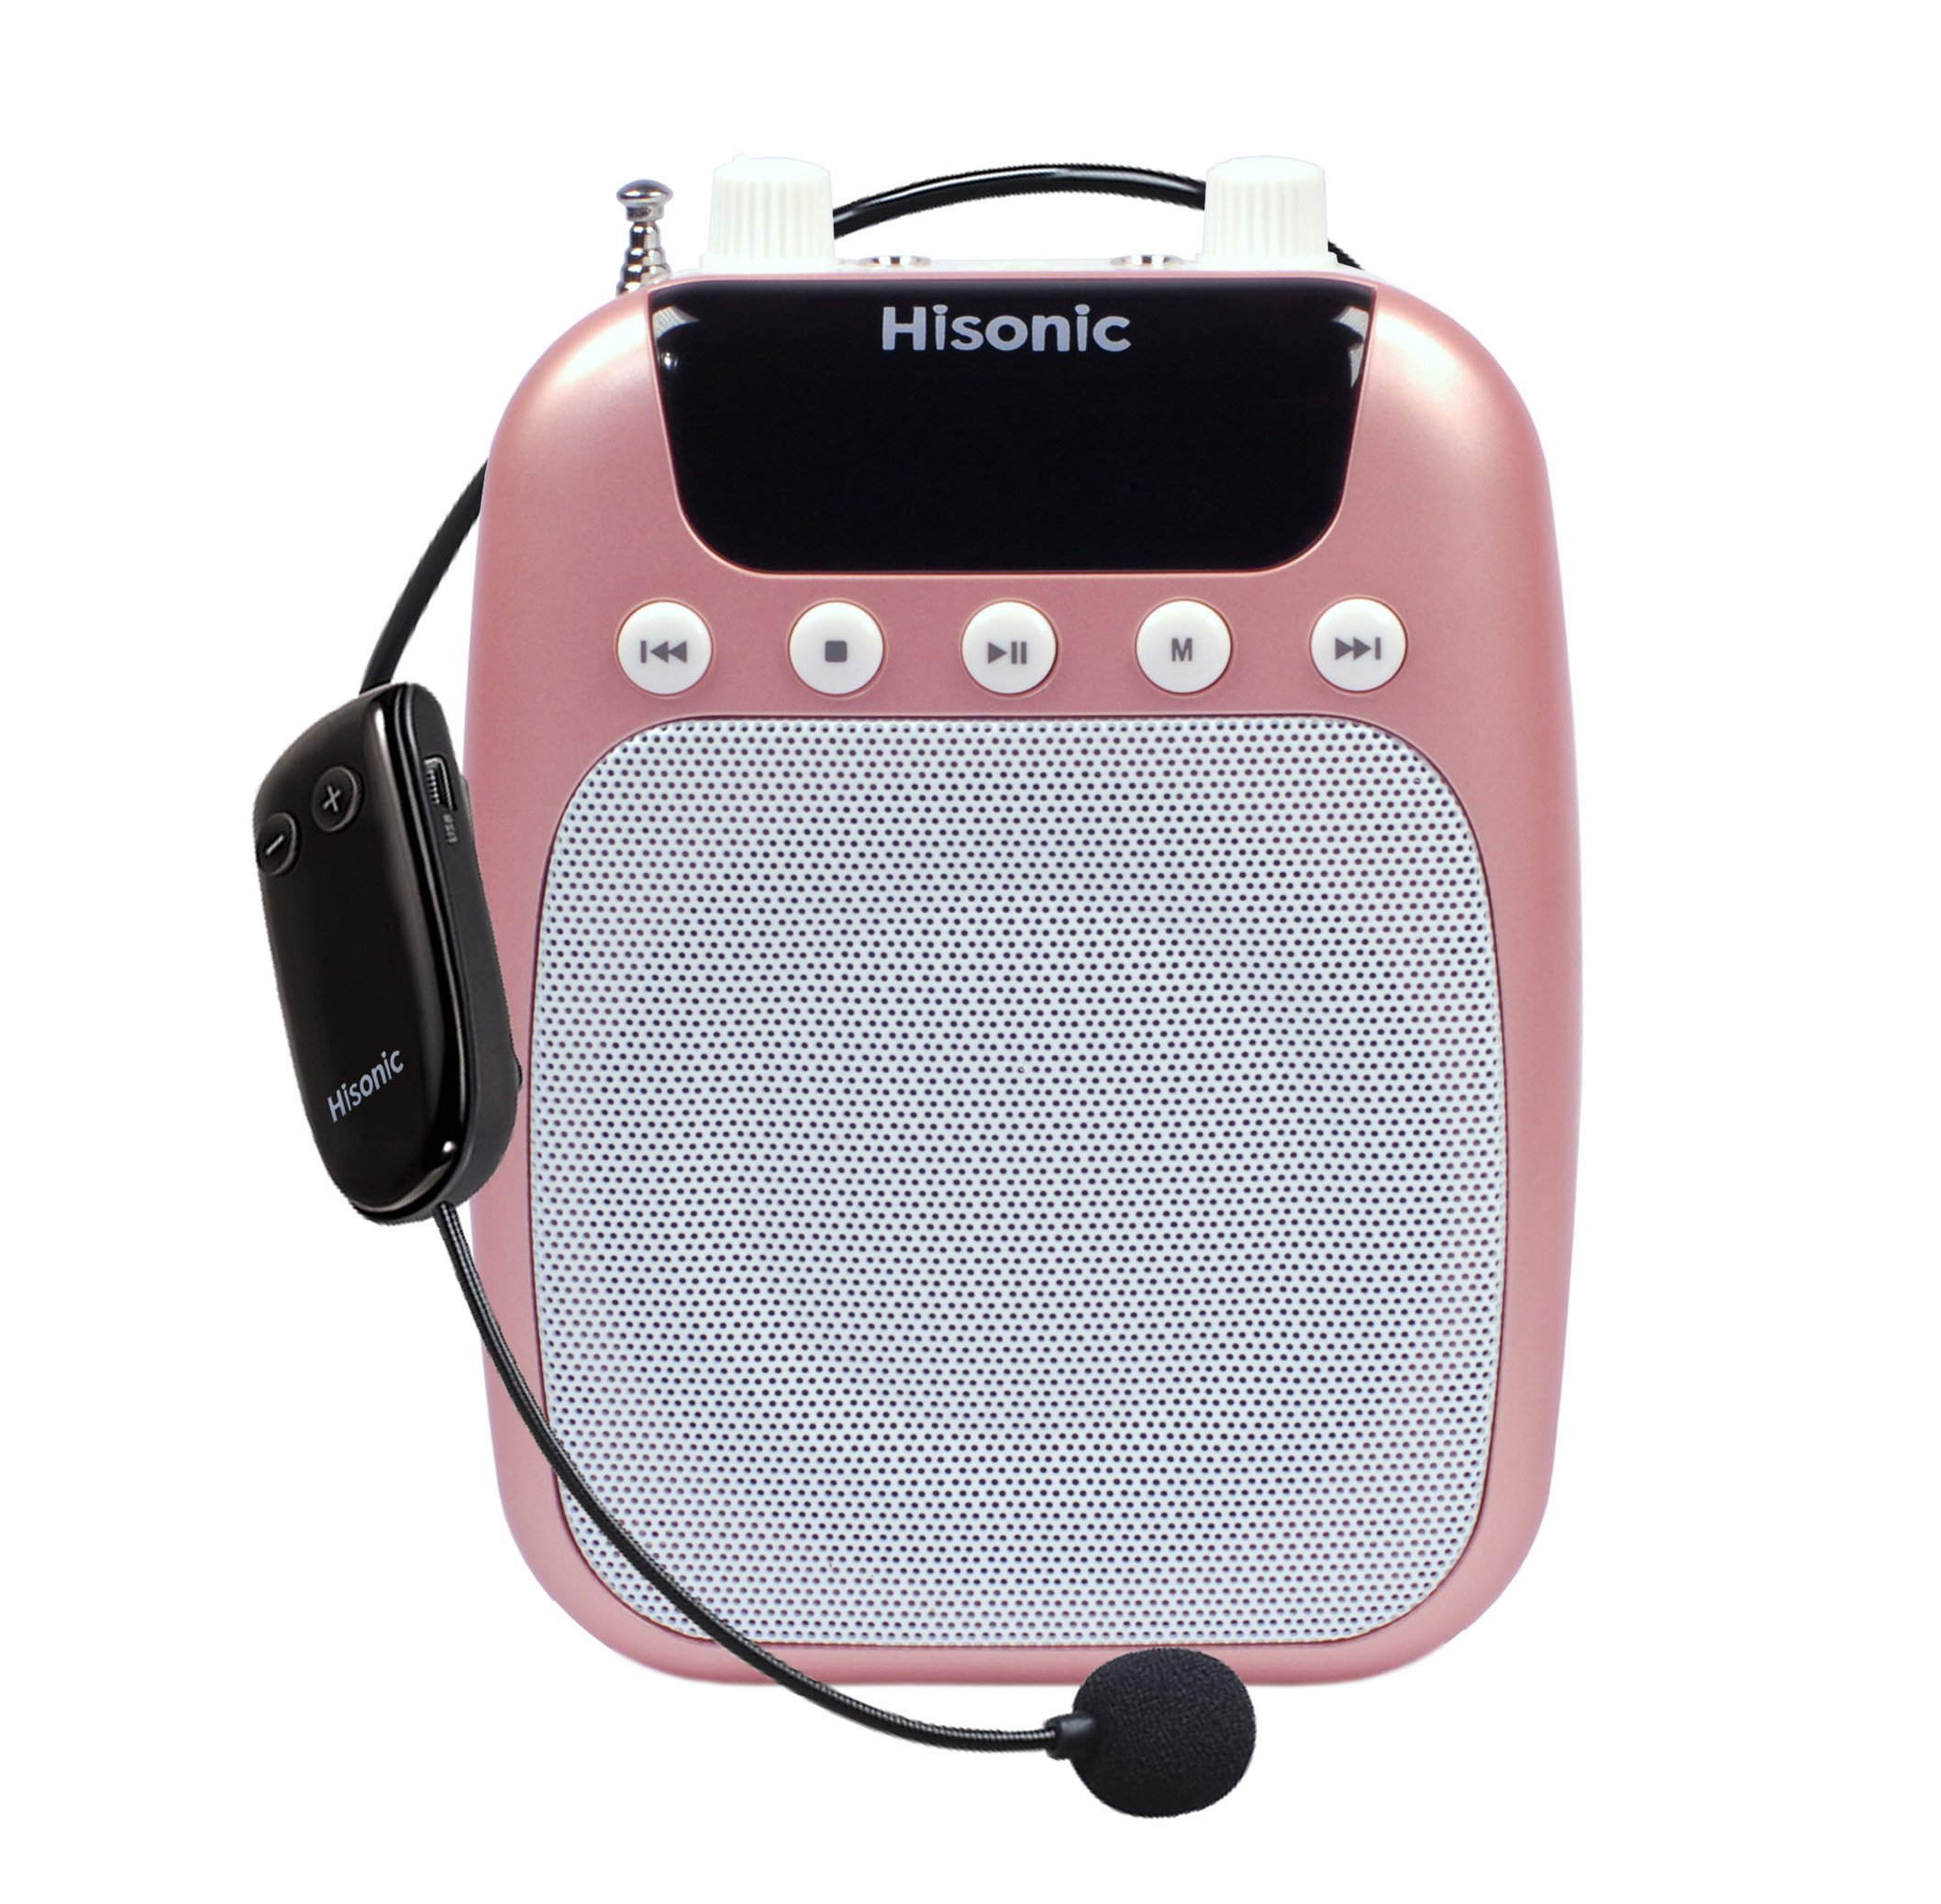 Hisonic HS320 10 Watts Rechargeable 4-in-1 Mini Audiopod: Voice Amplifier with UHF Wireless Headset Microphone + Portable Speaker + Digital Voice Recorder + FM Radio